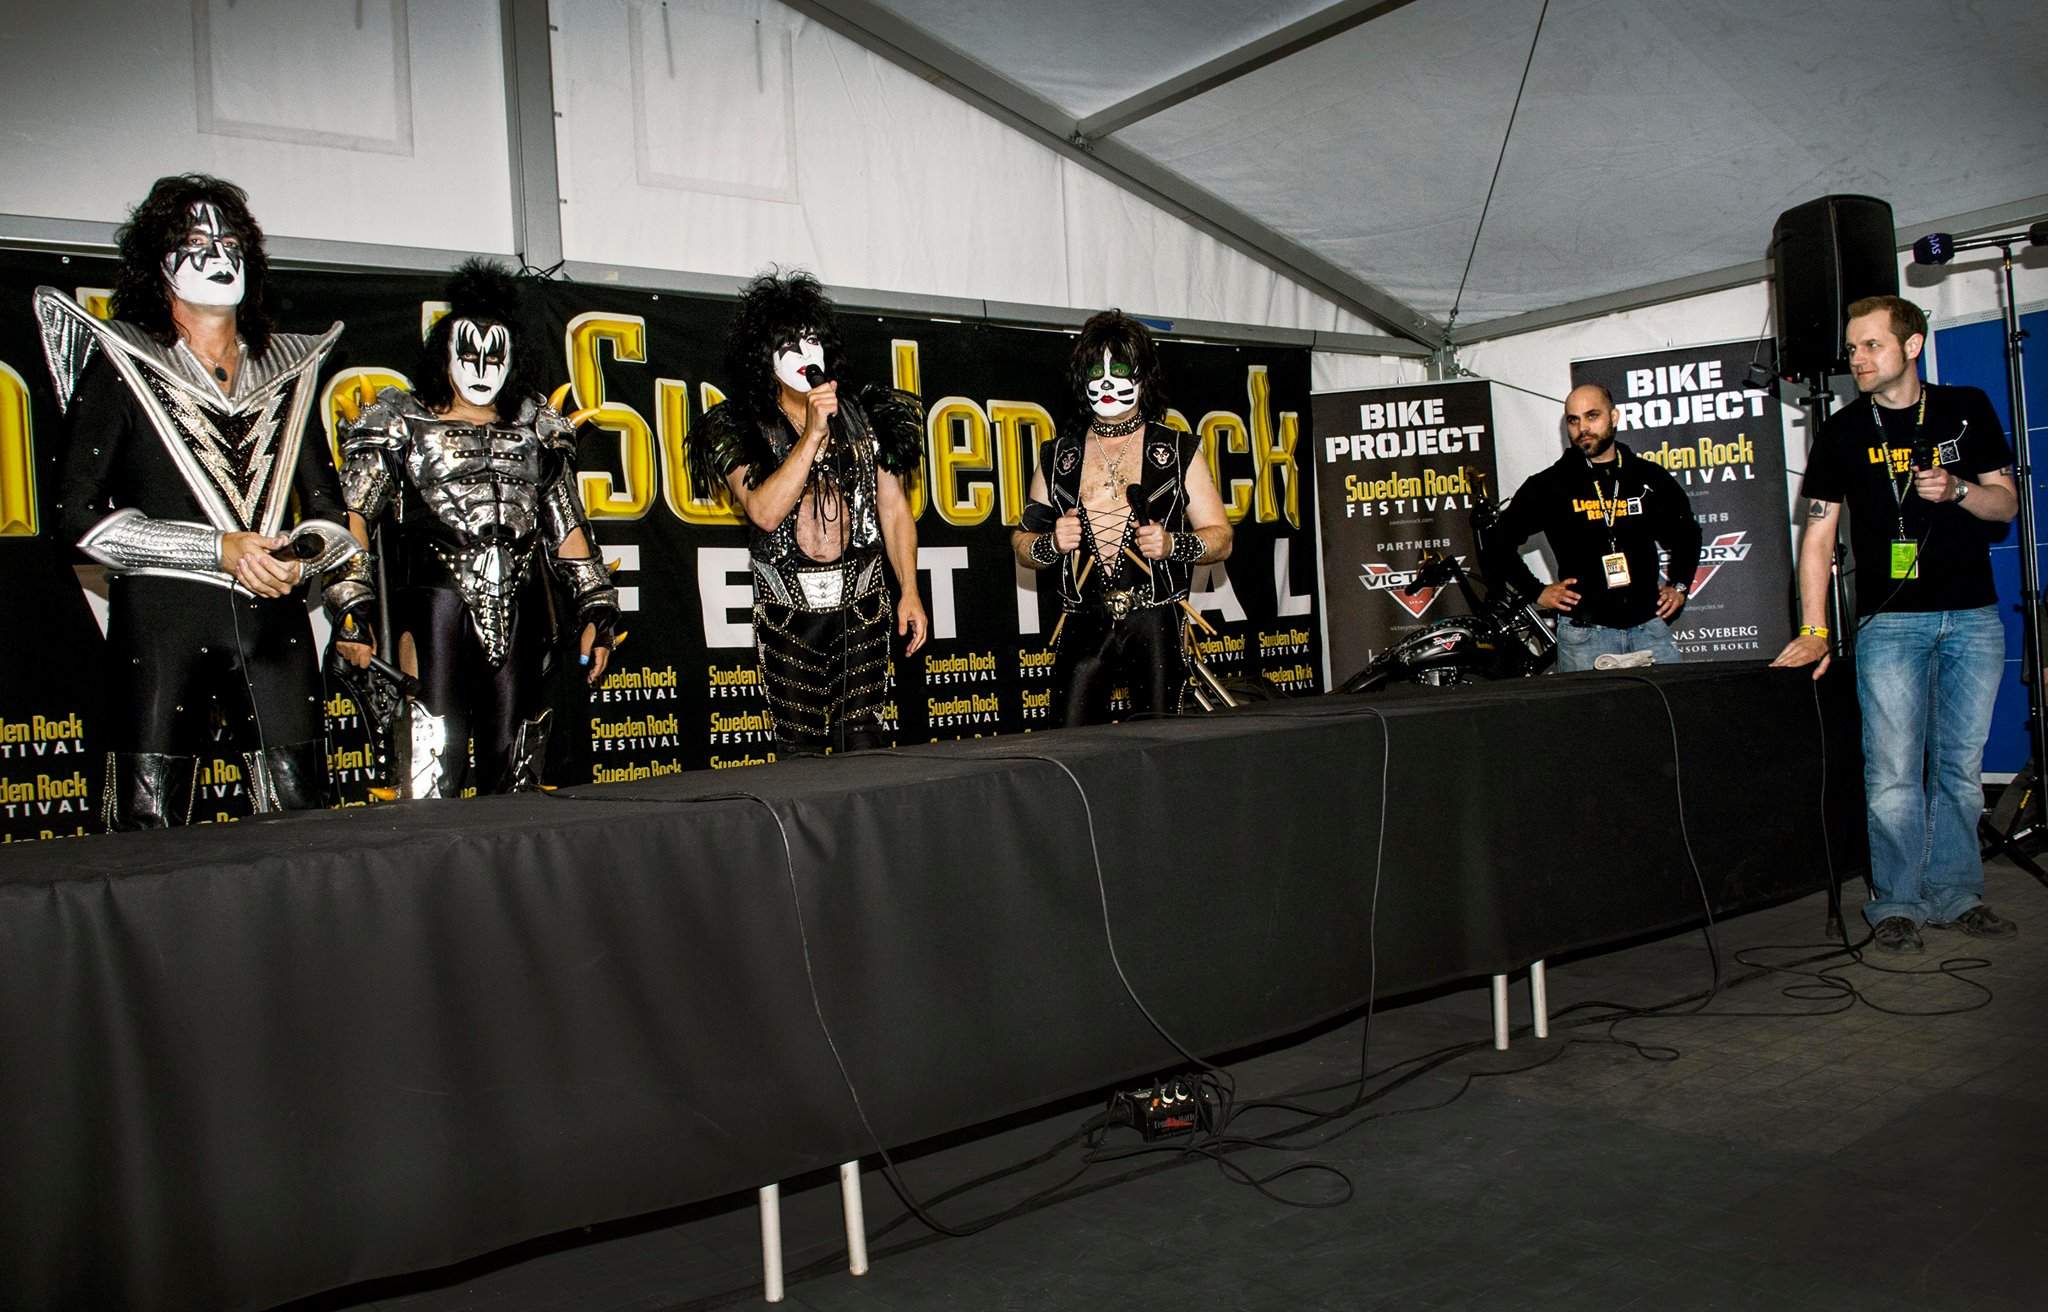 kiss-sweden-rock-festival-lightning-records